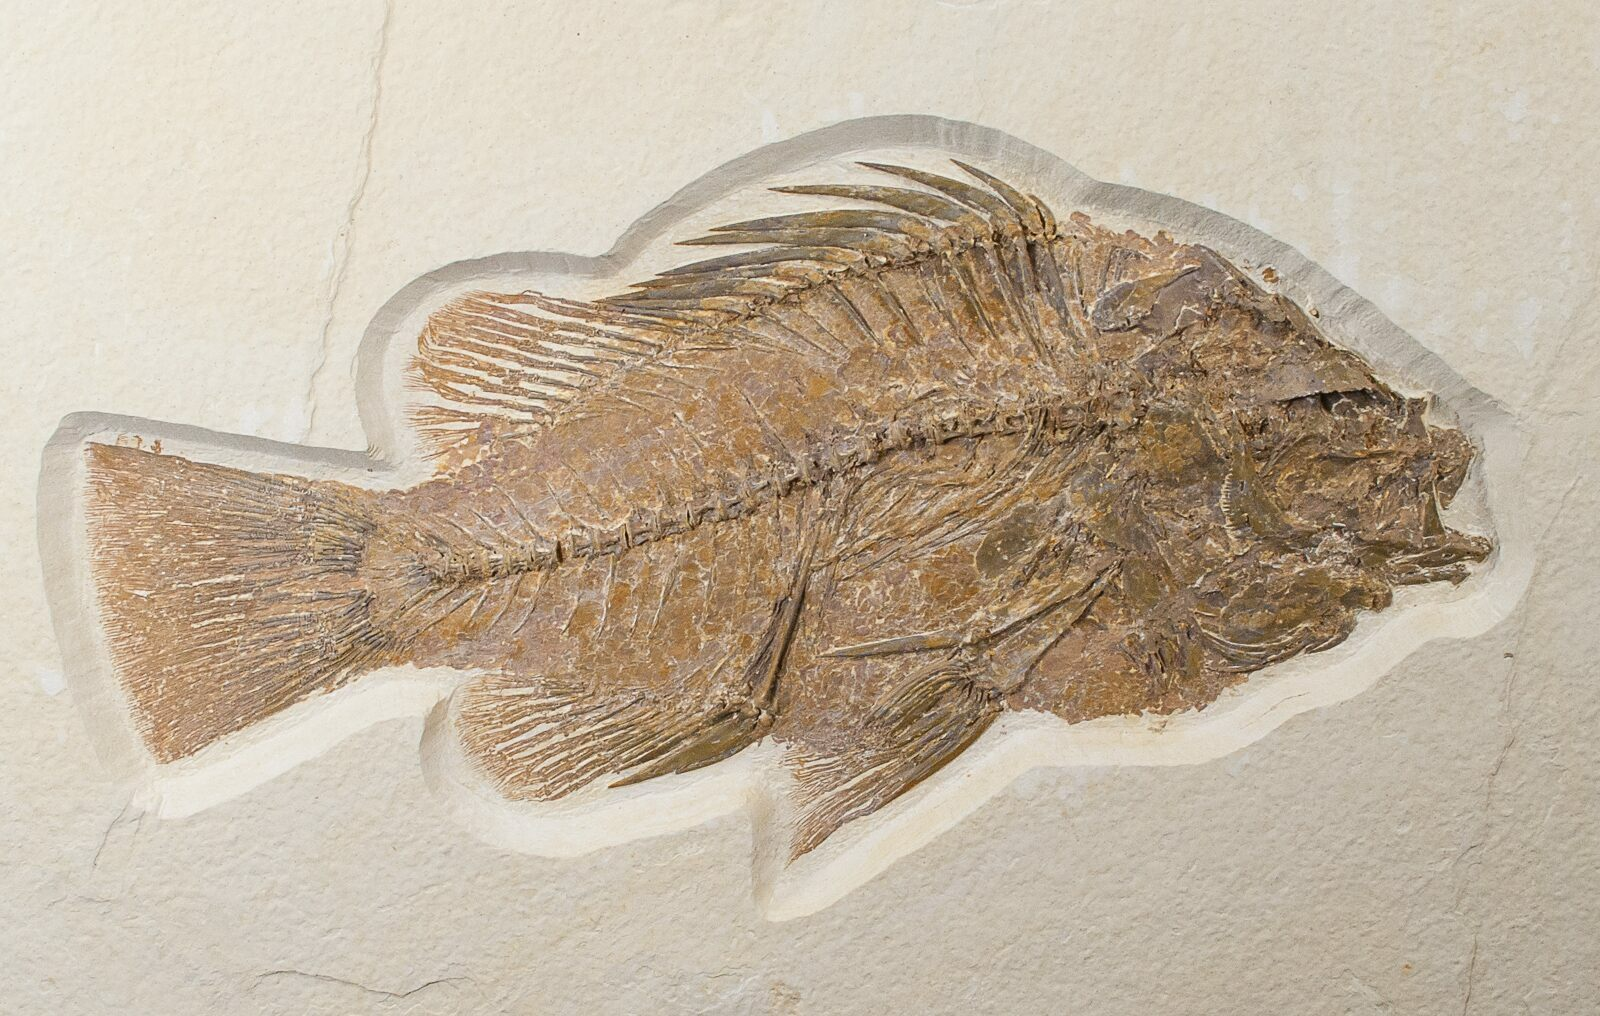 Large 8 4 priscacara fossil fish wyoming for sale for Fish fossils for sale